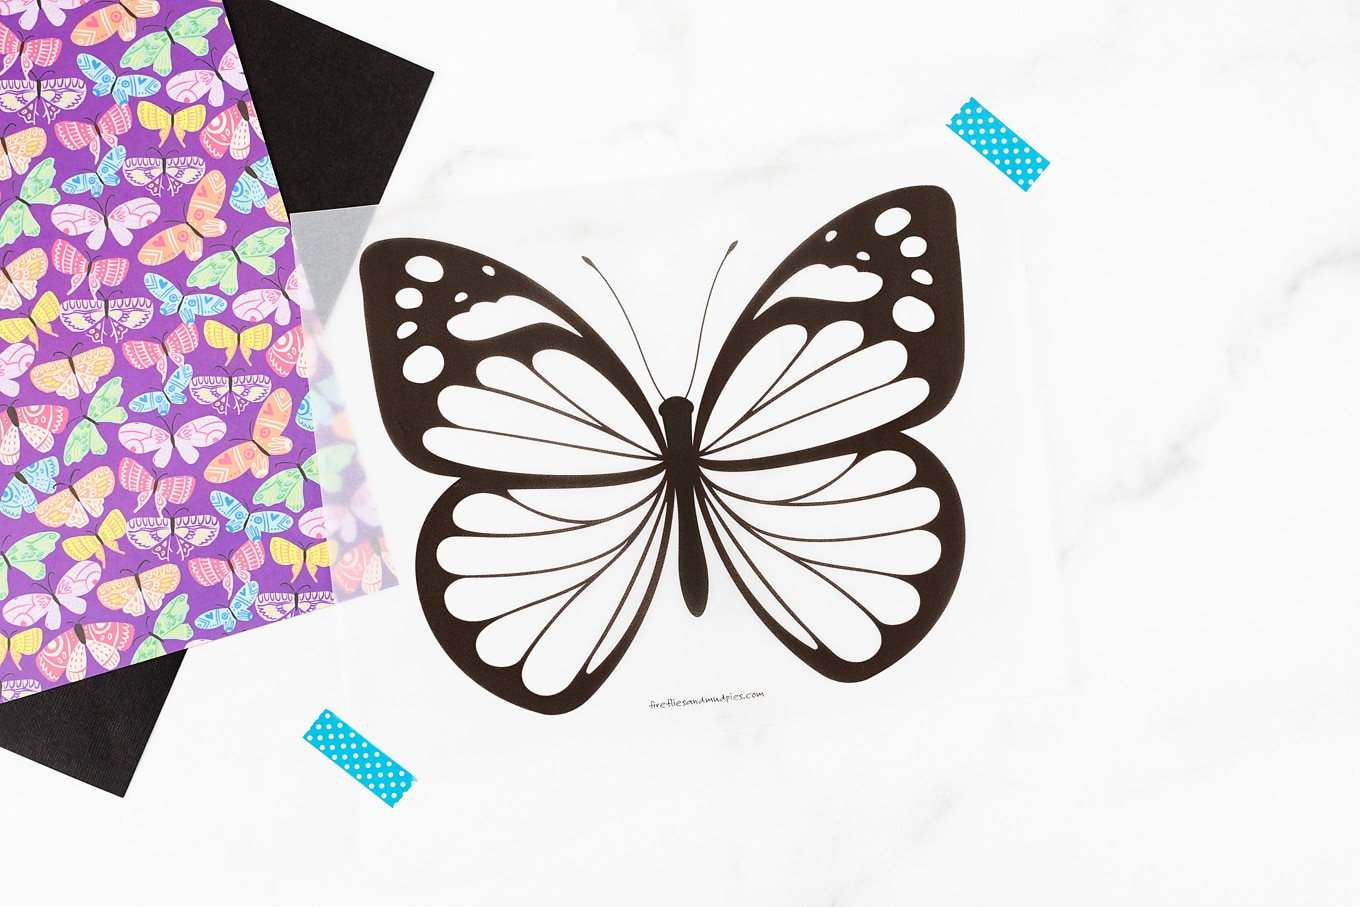 Butterfly Template Printed on Vellum